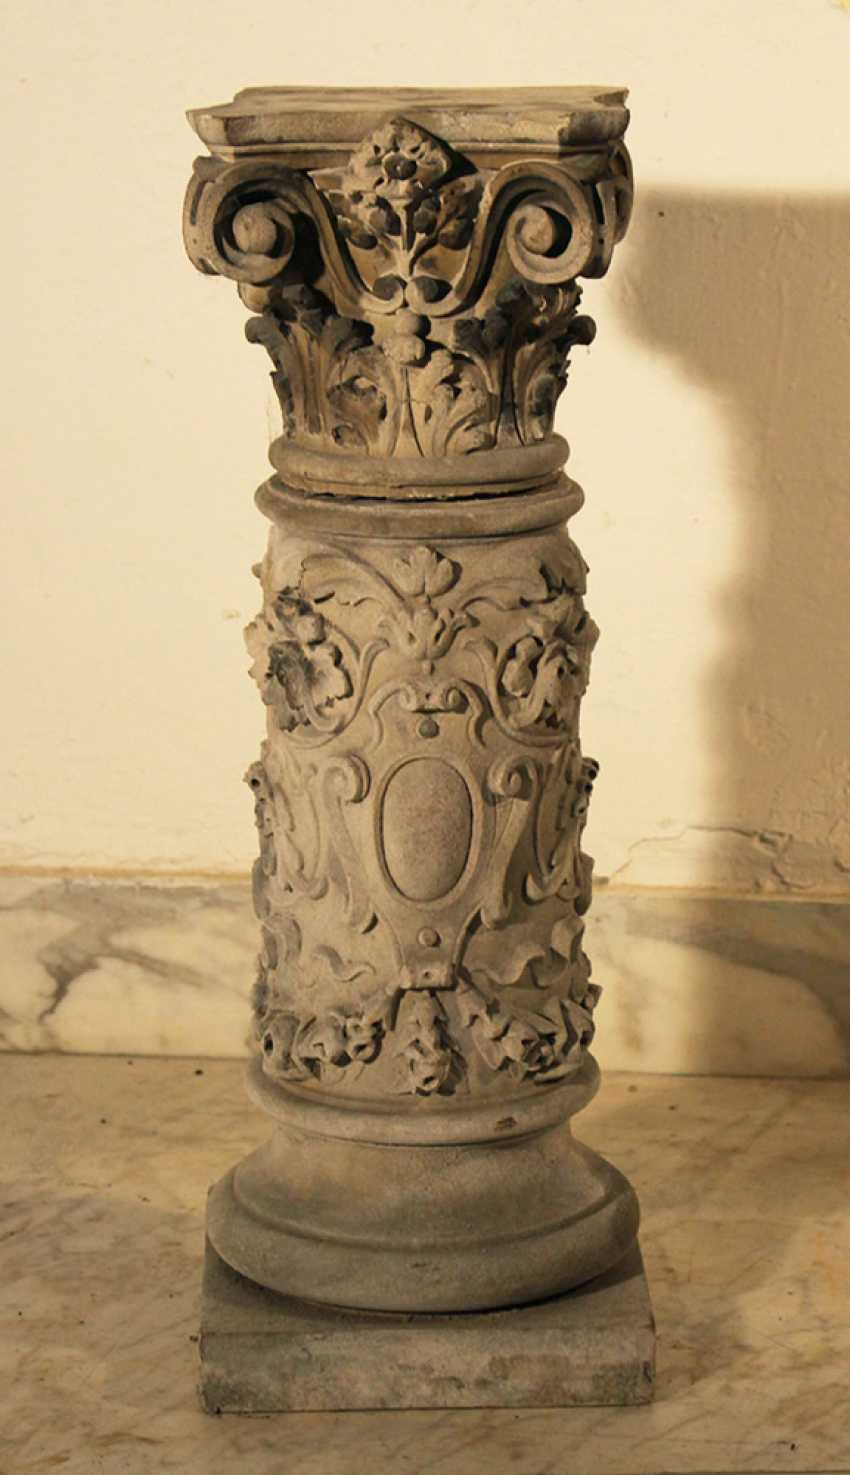 A small stone column with Corinthian capitel and floral sculpted decorations on quadratic plinth - photo 1